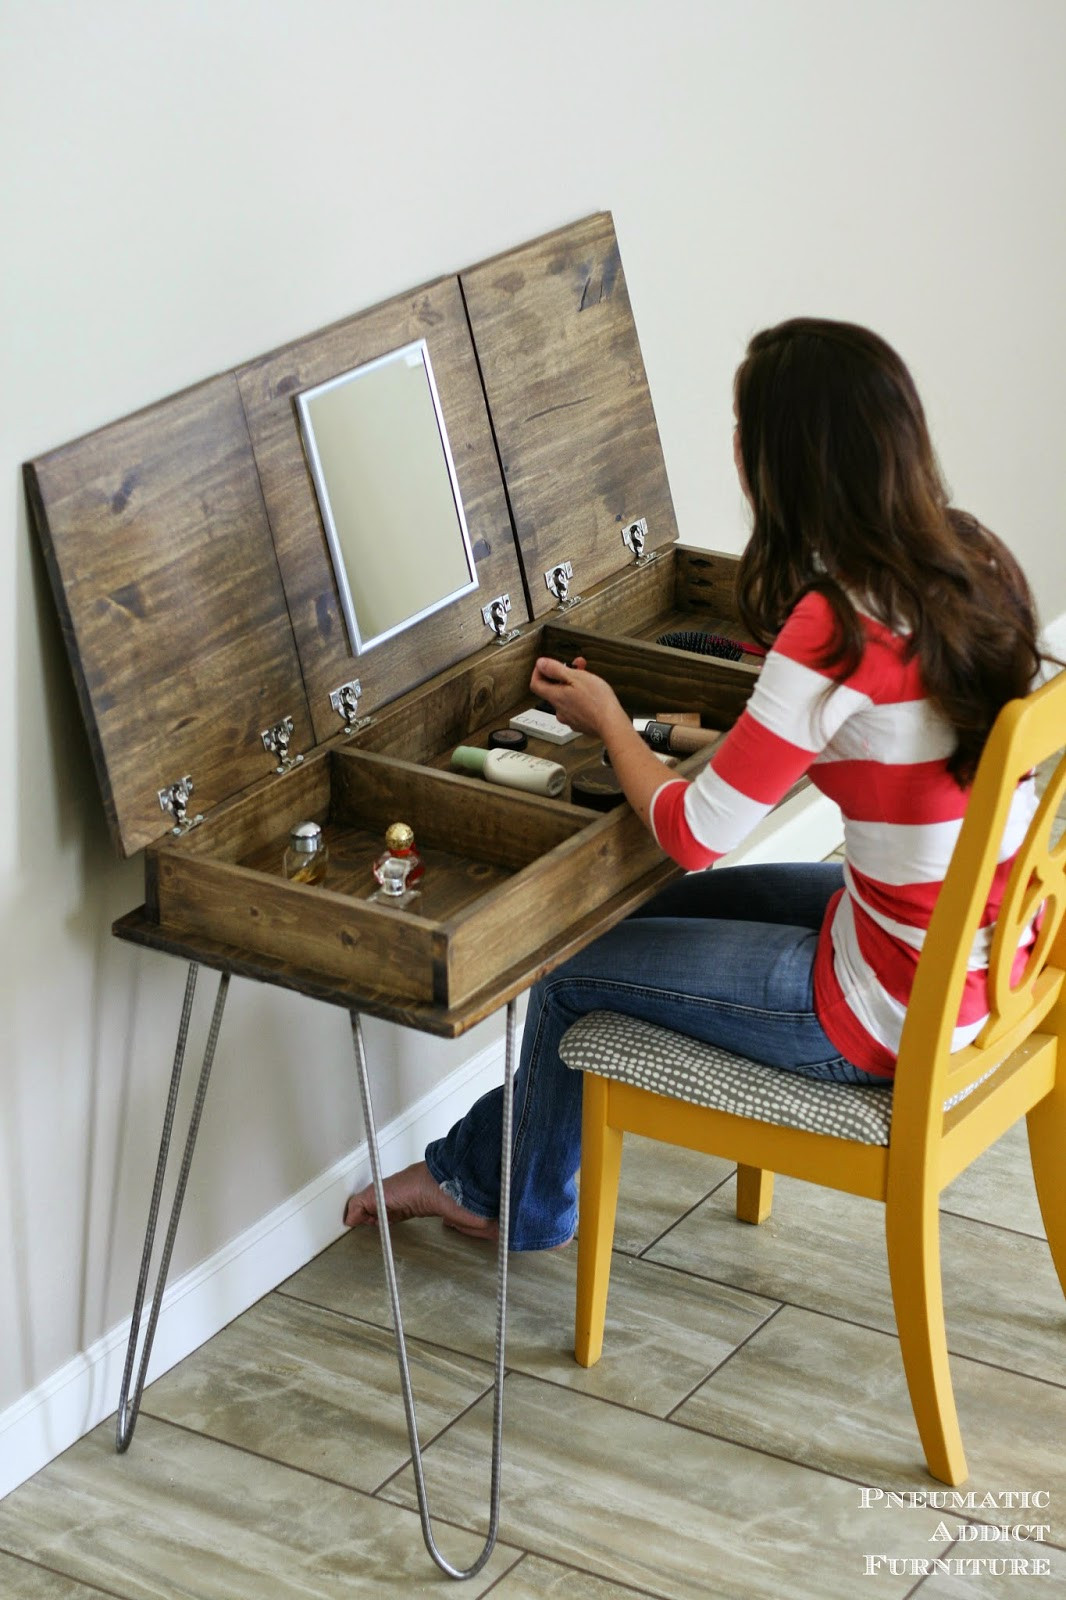 Best ideas about DIY Vanity Table Plans . Save or Pin Hairpin Make up Vanity [Building Plans and GIVEAWAY Now.